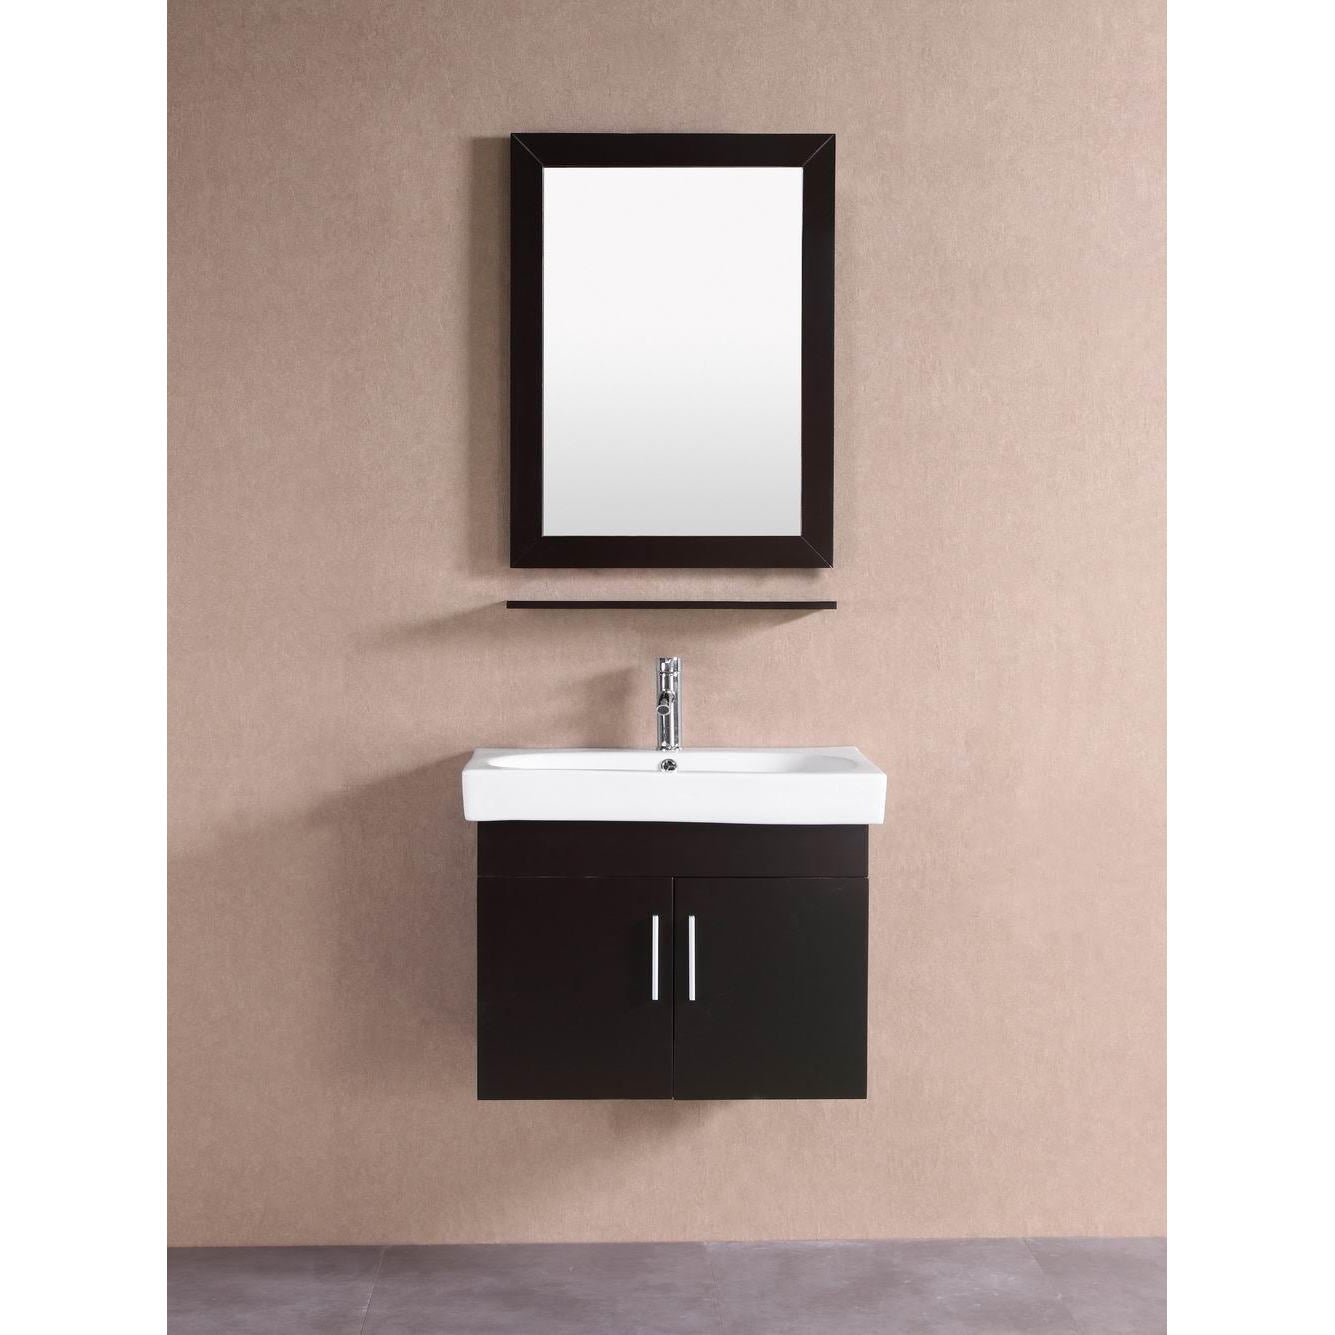 Shop belvedere modern espresso 28 inch floating bathroom vanity free shipping today overstock com 11783610